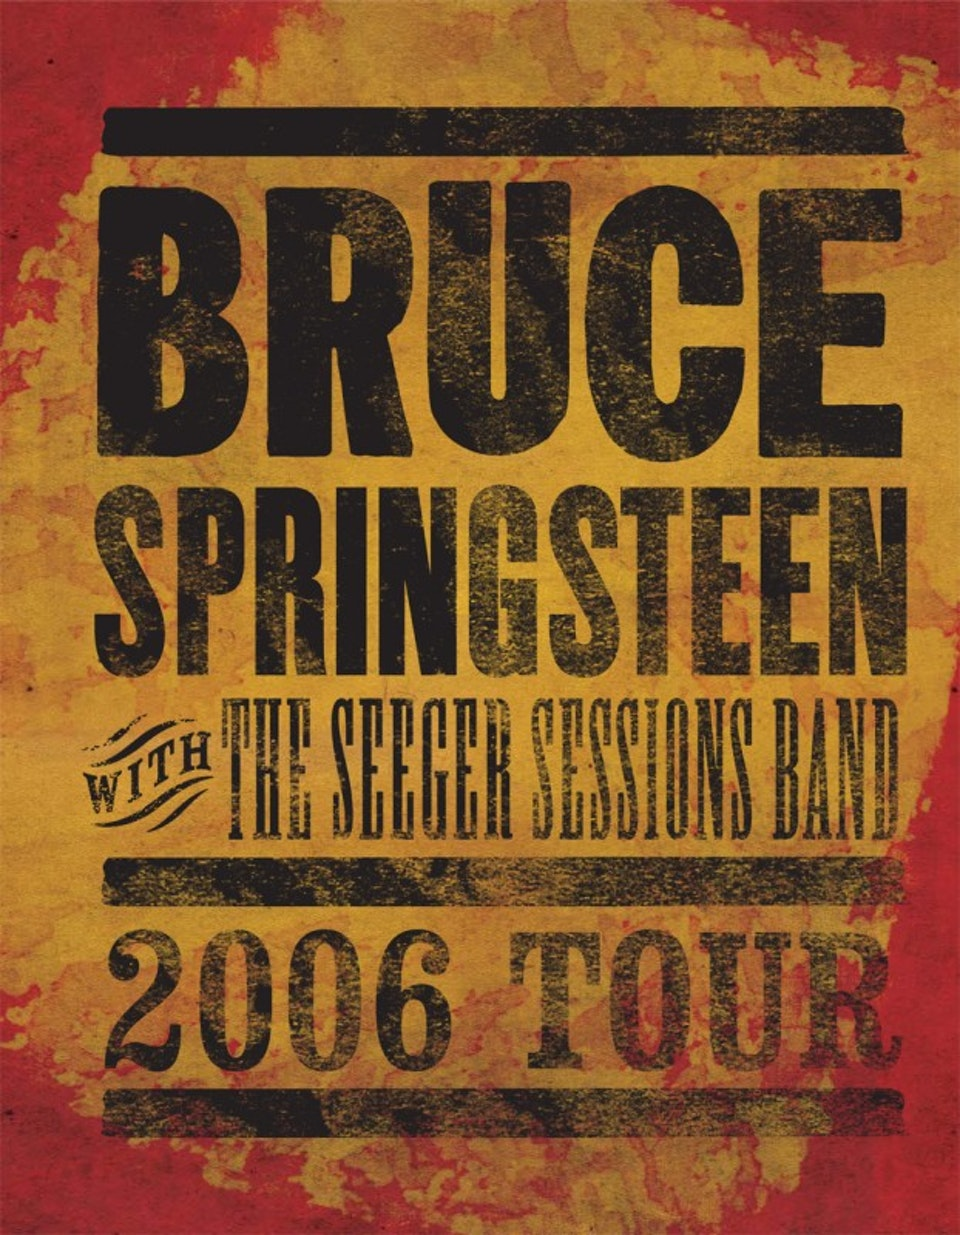 Seeger Sessions Band Tour Book - Tour book cover